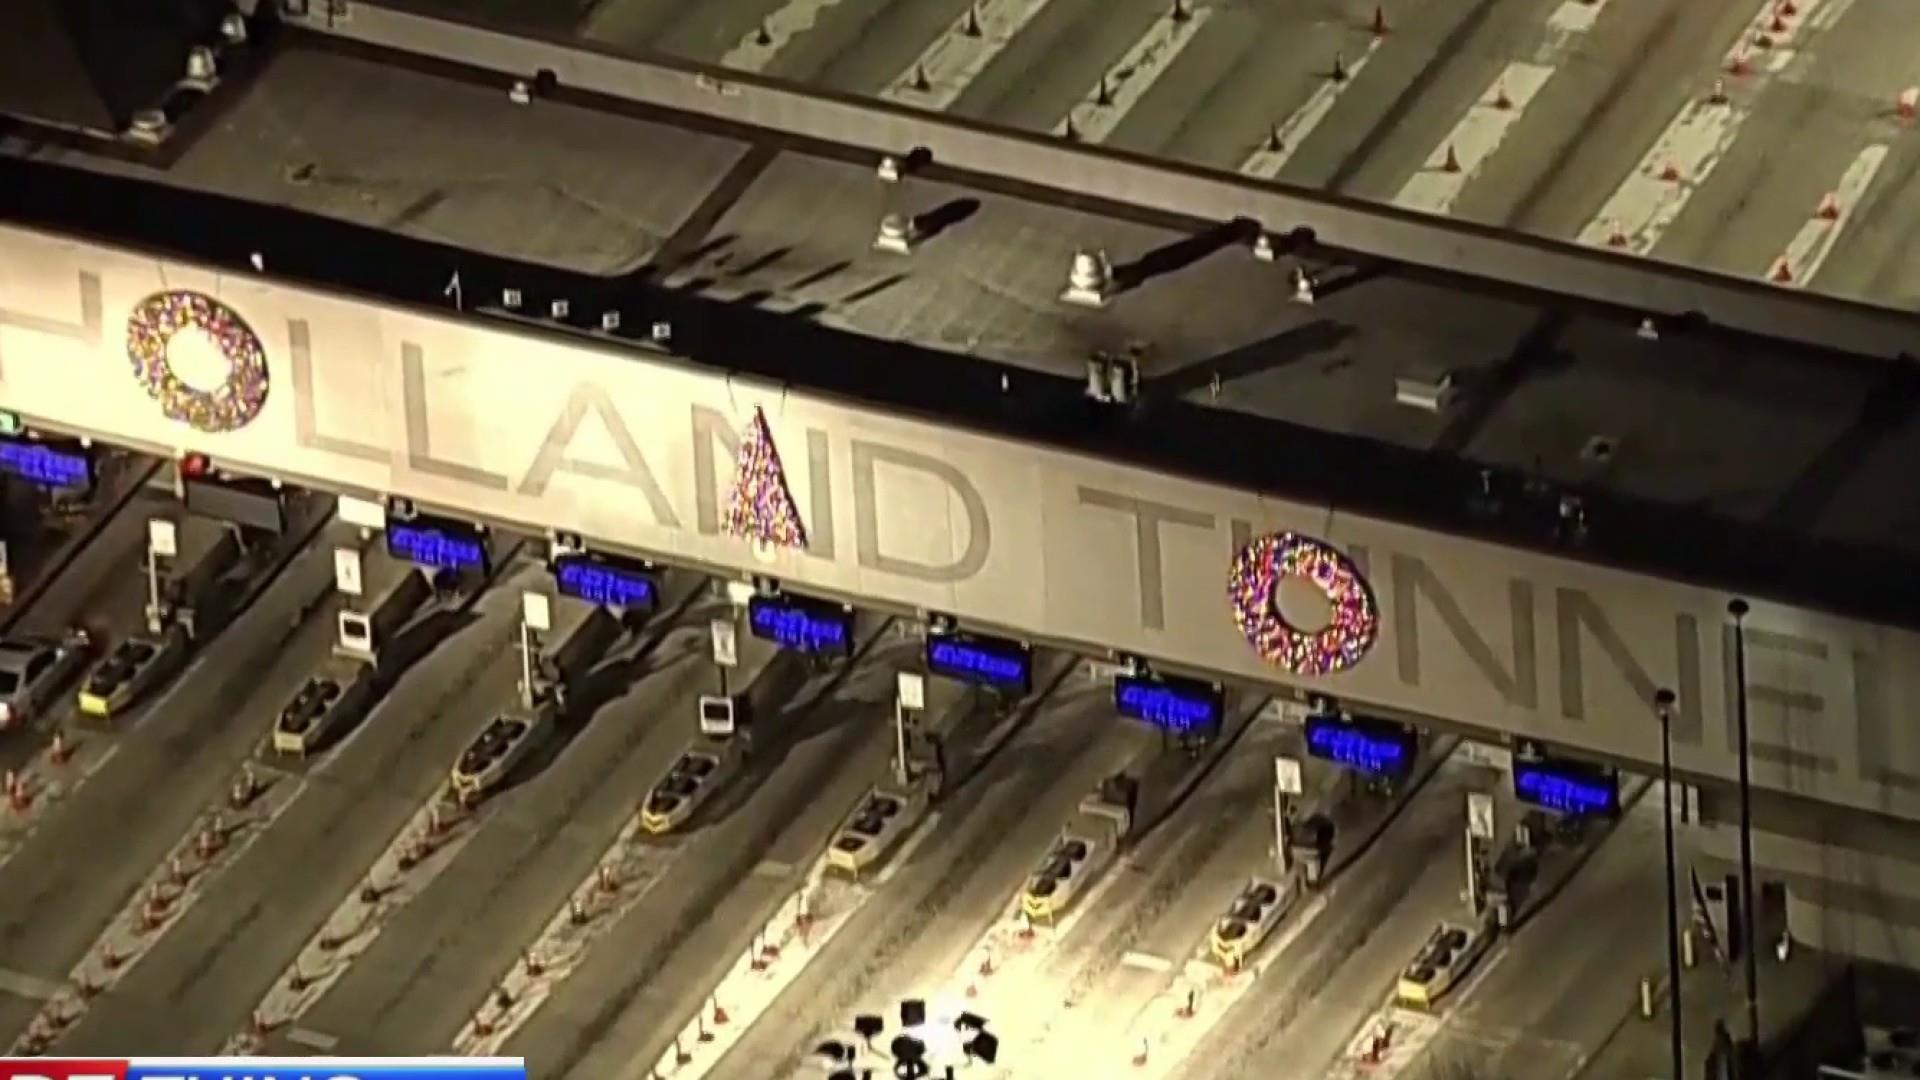 One more thing: The Holland Tunnel's Holiday decorations